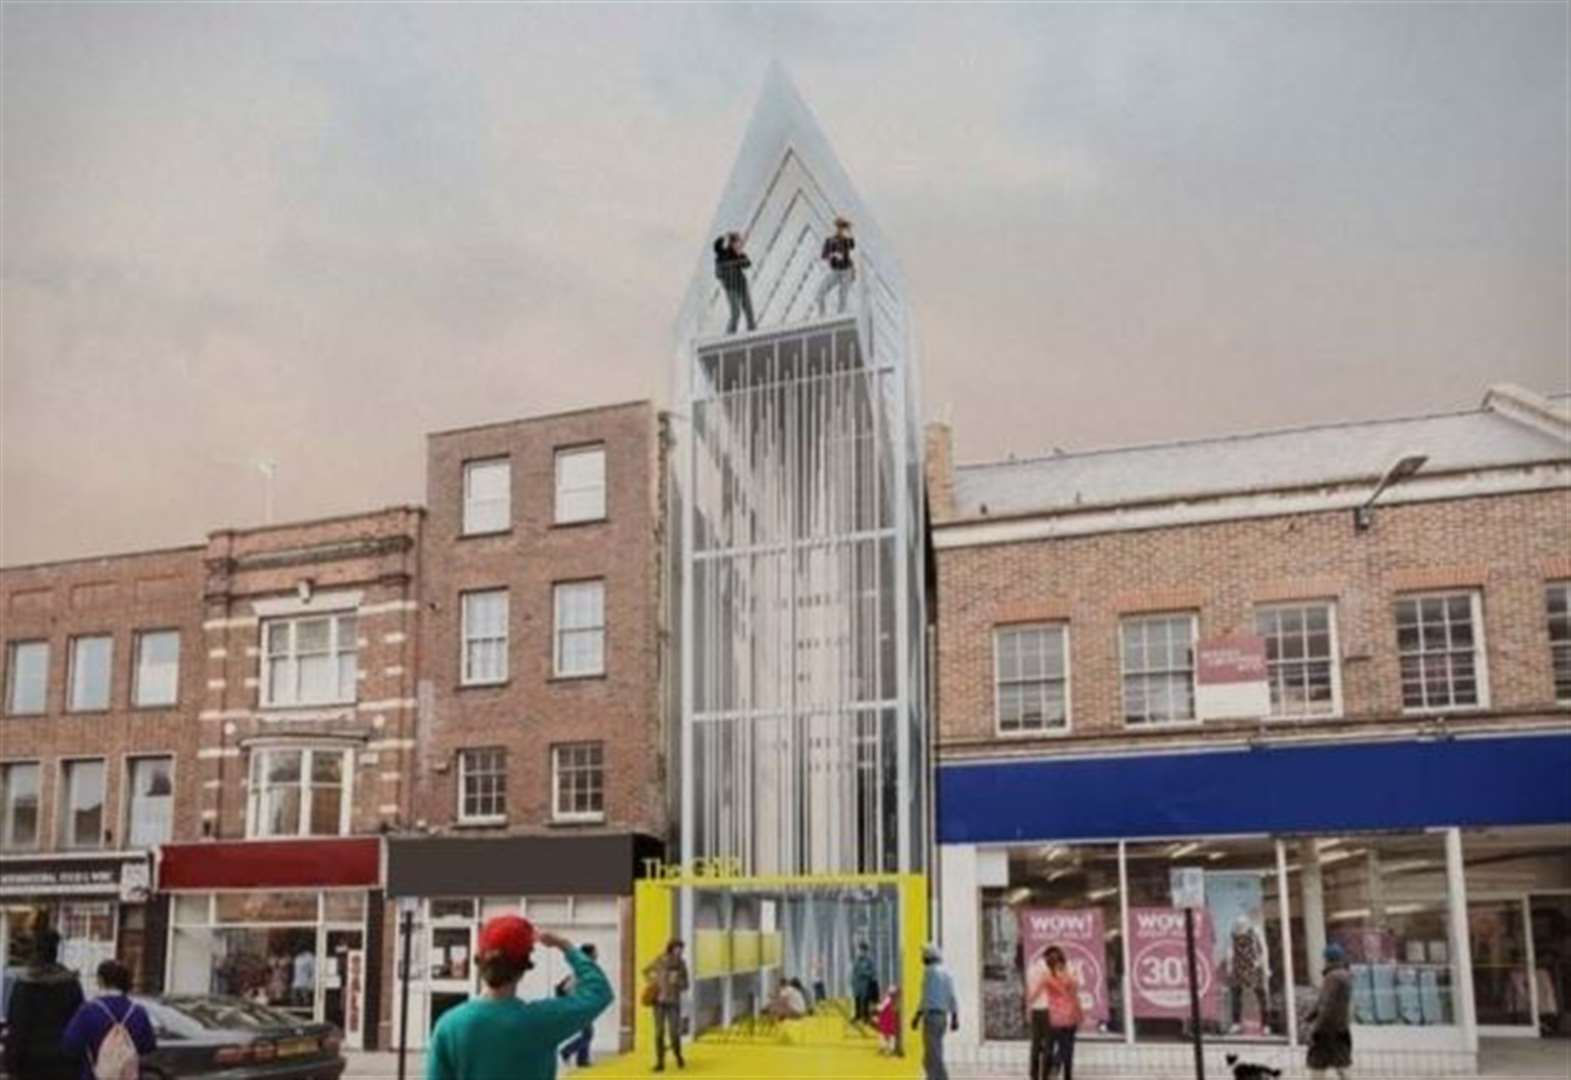 Update on future of Wisbech's 'Marmite' building 'The Gap' could be made after secret debate